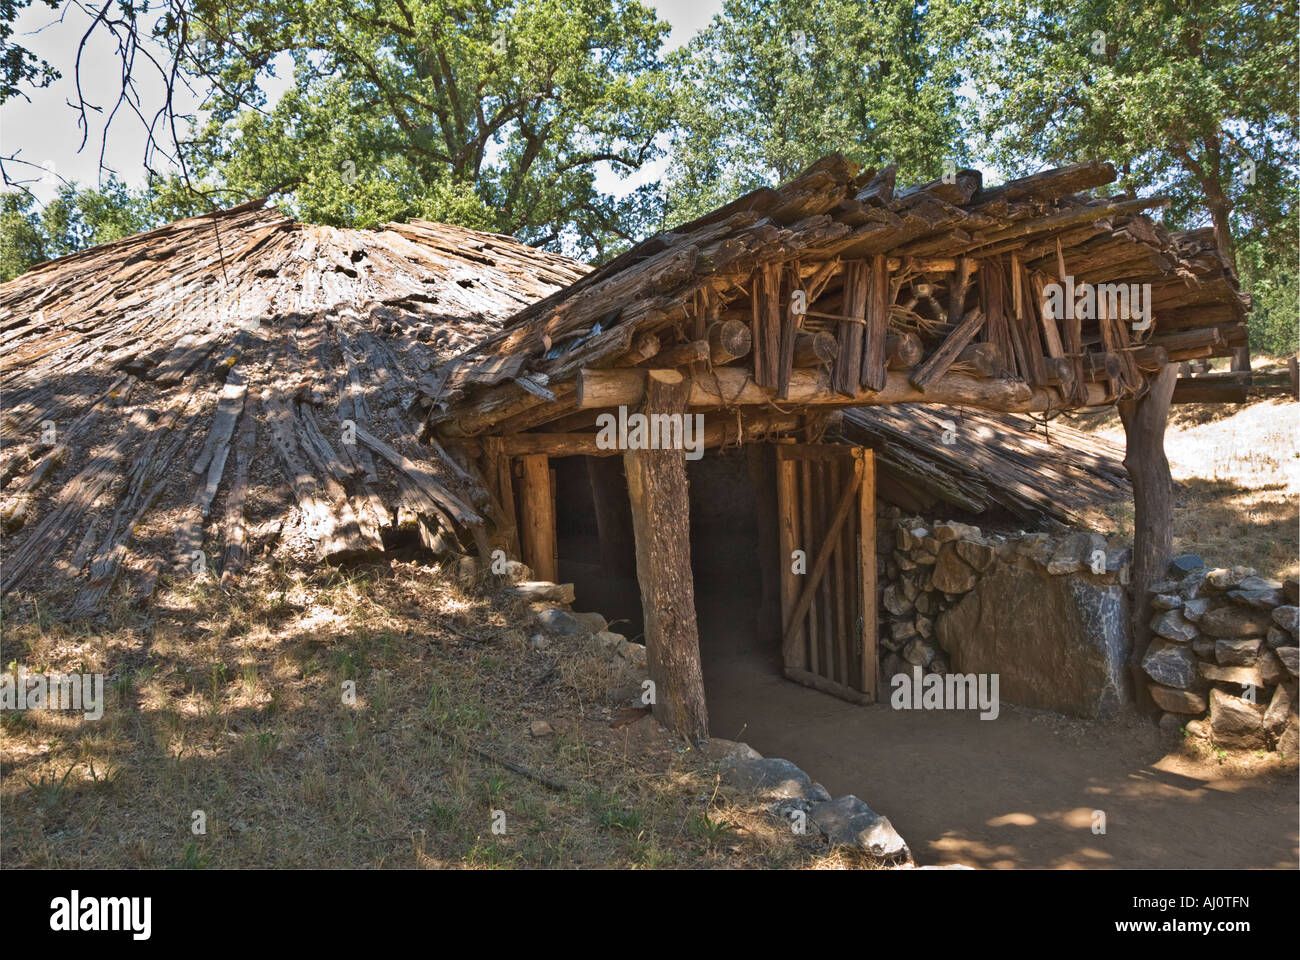 how to build a native american subterranean roundhouse